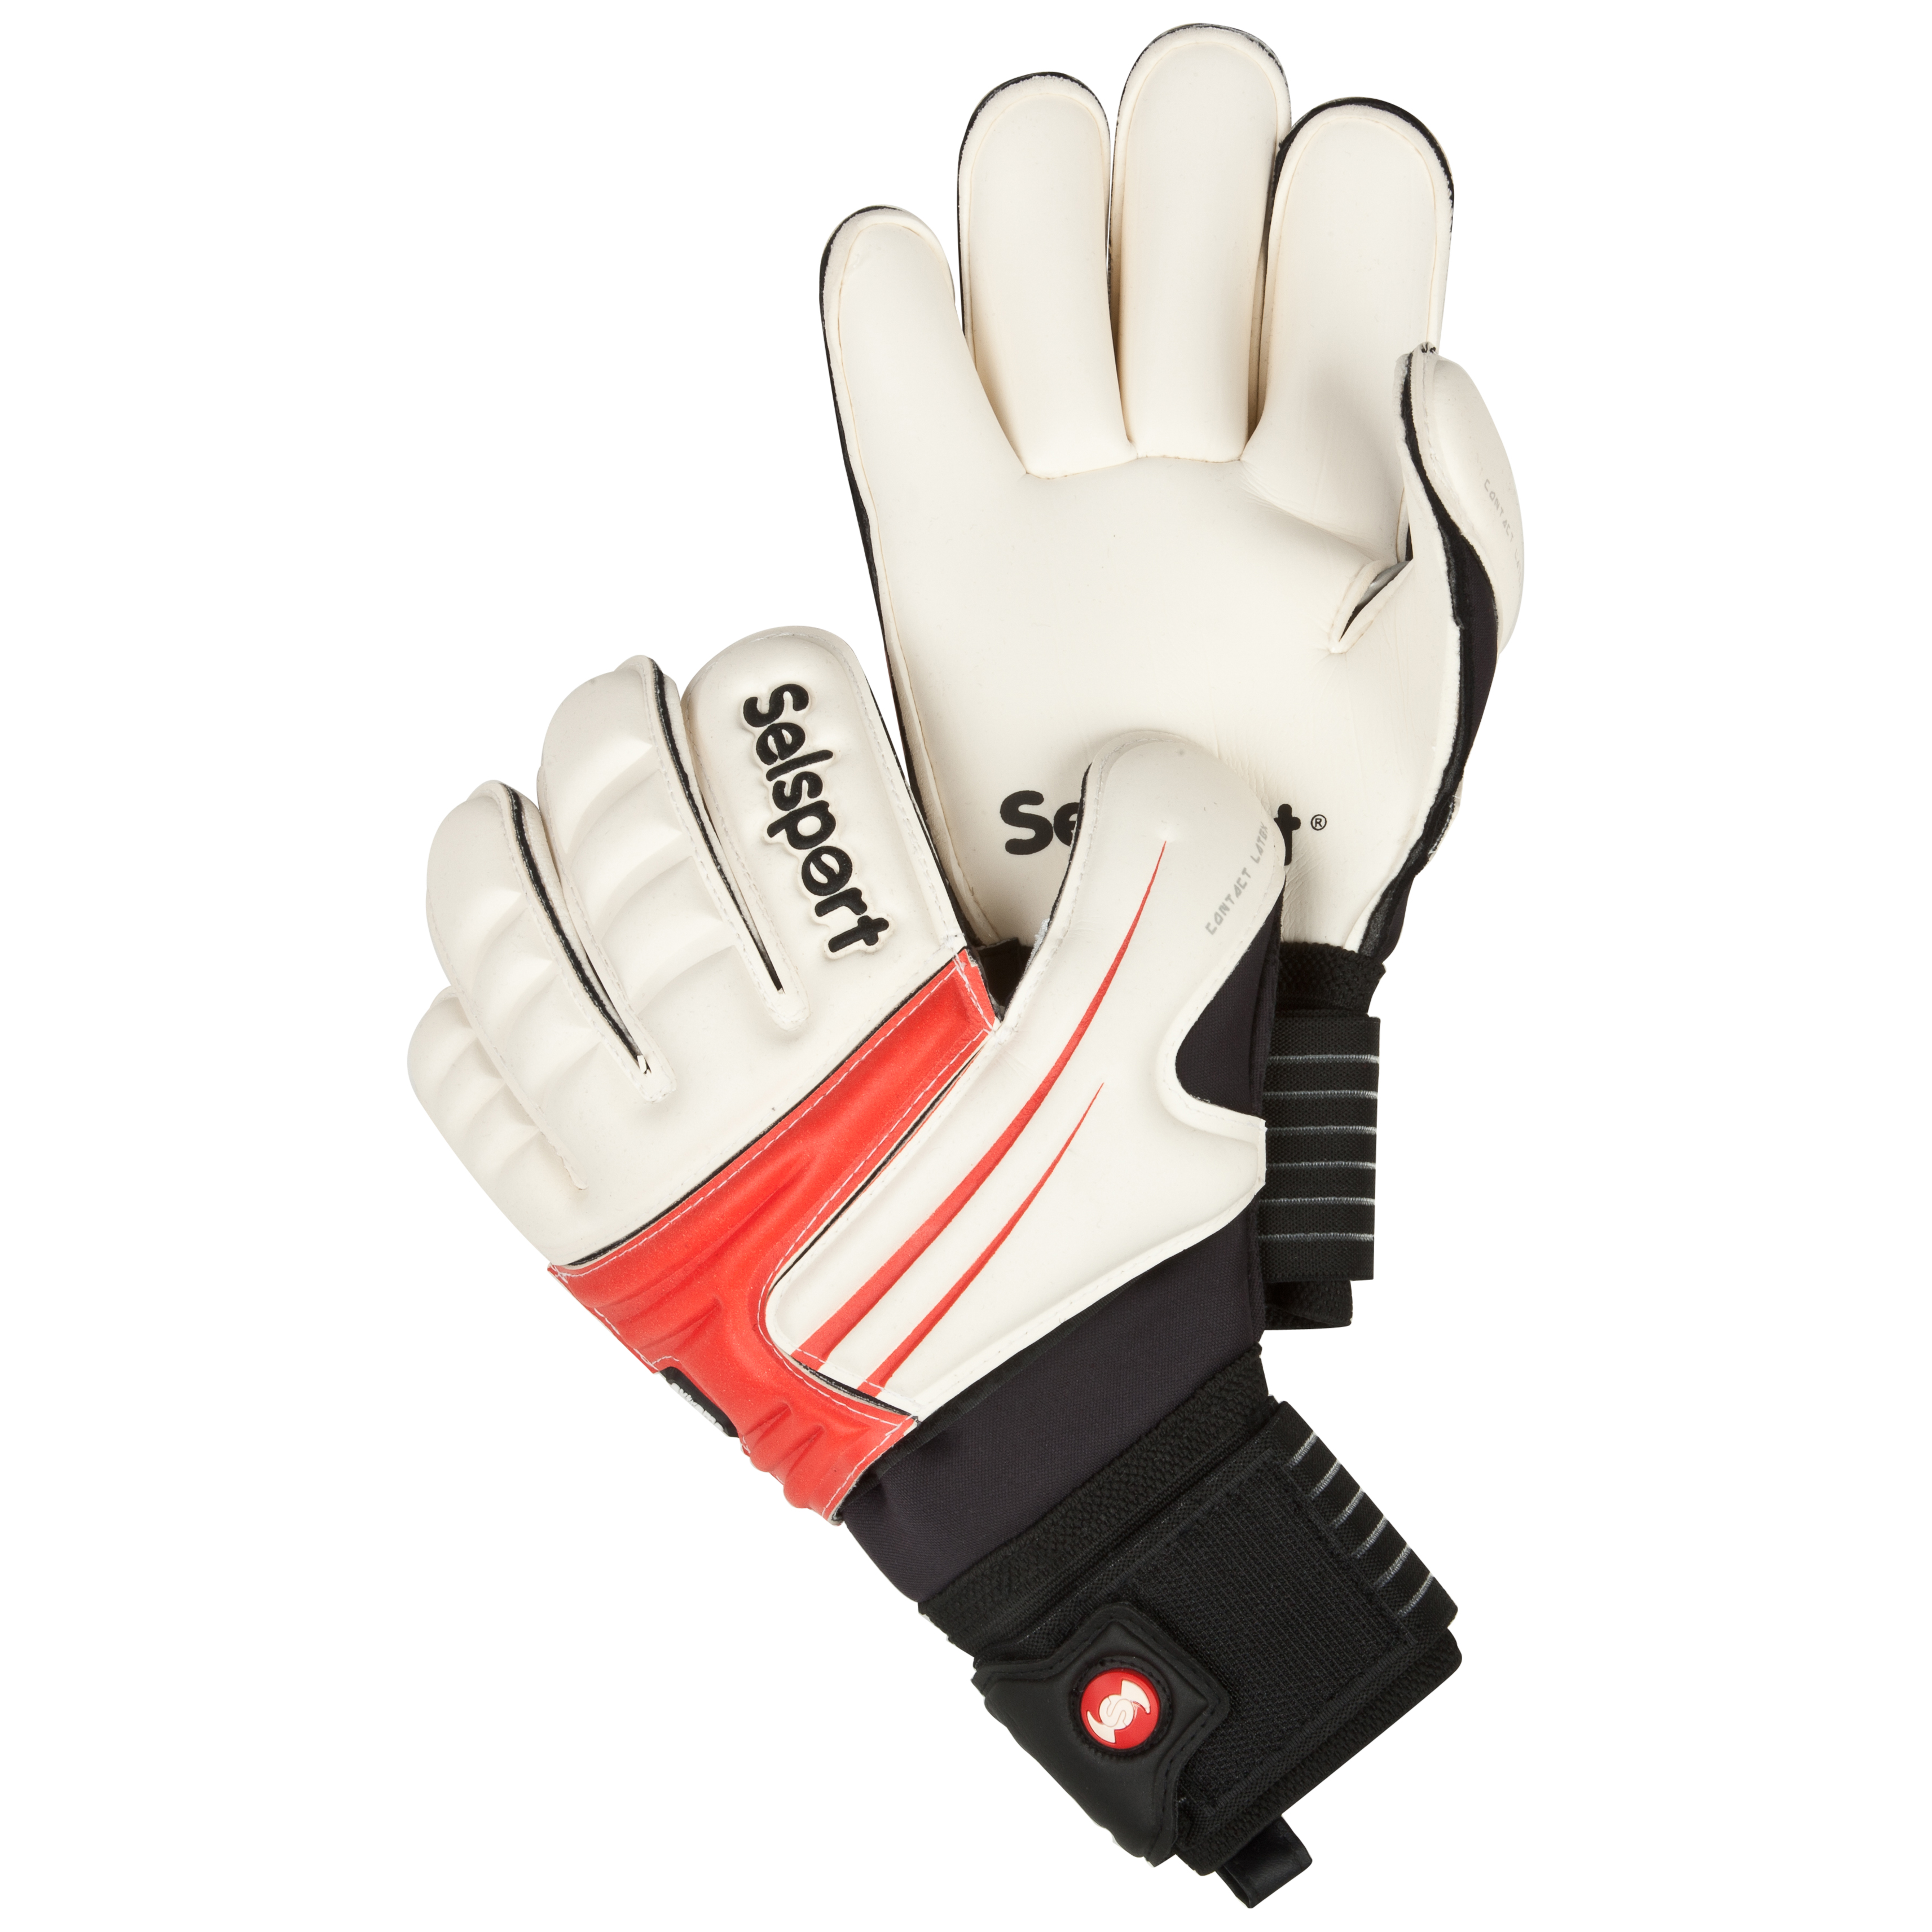 Selsport Extreme 1 Goalkeeper Gloves - Red